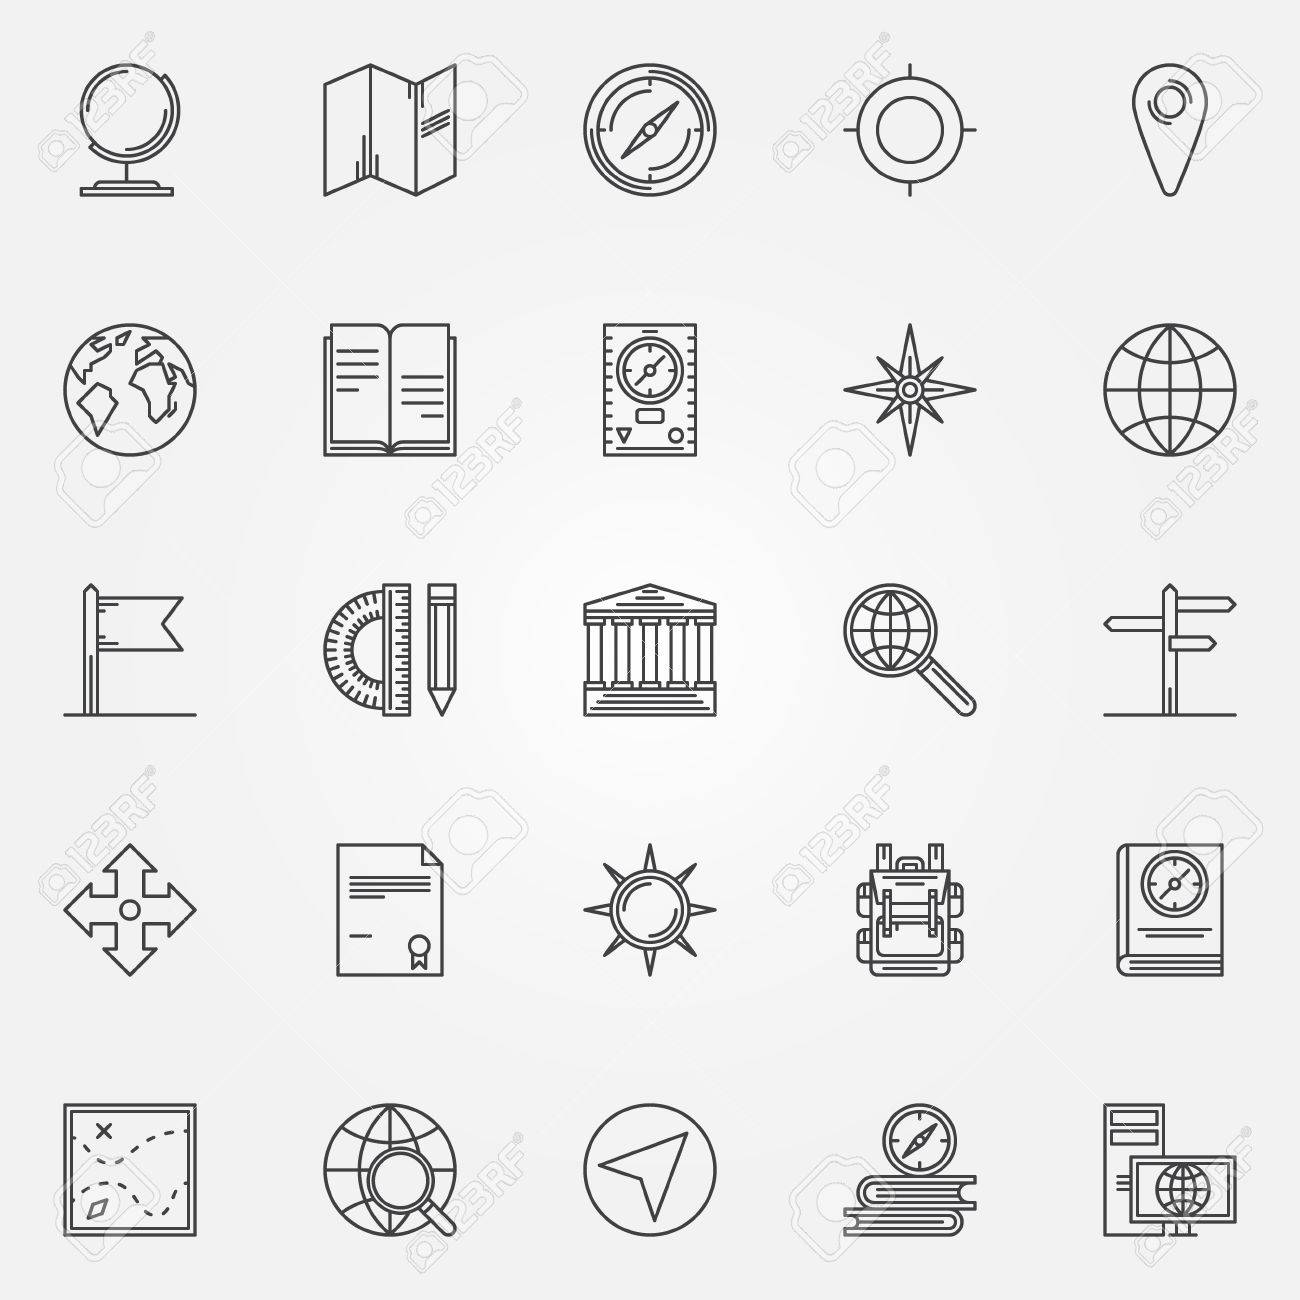 Geography Icons Set Vector Linear Education Cartography Symbols